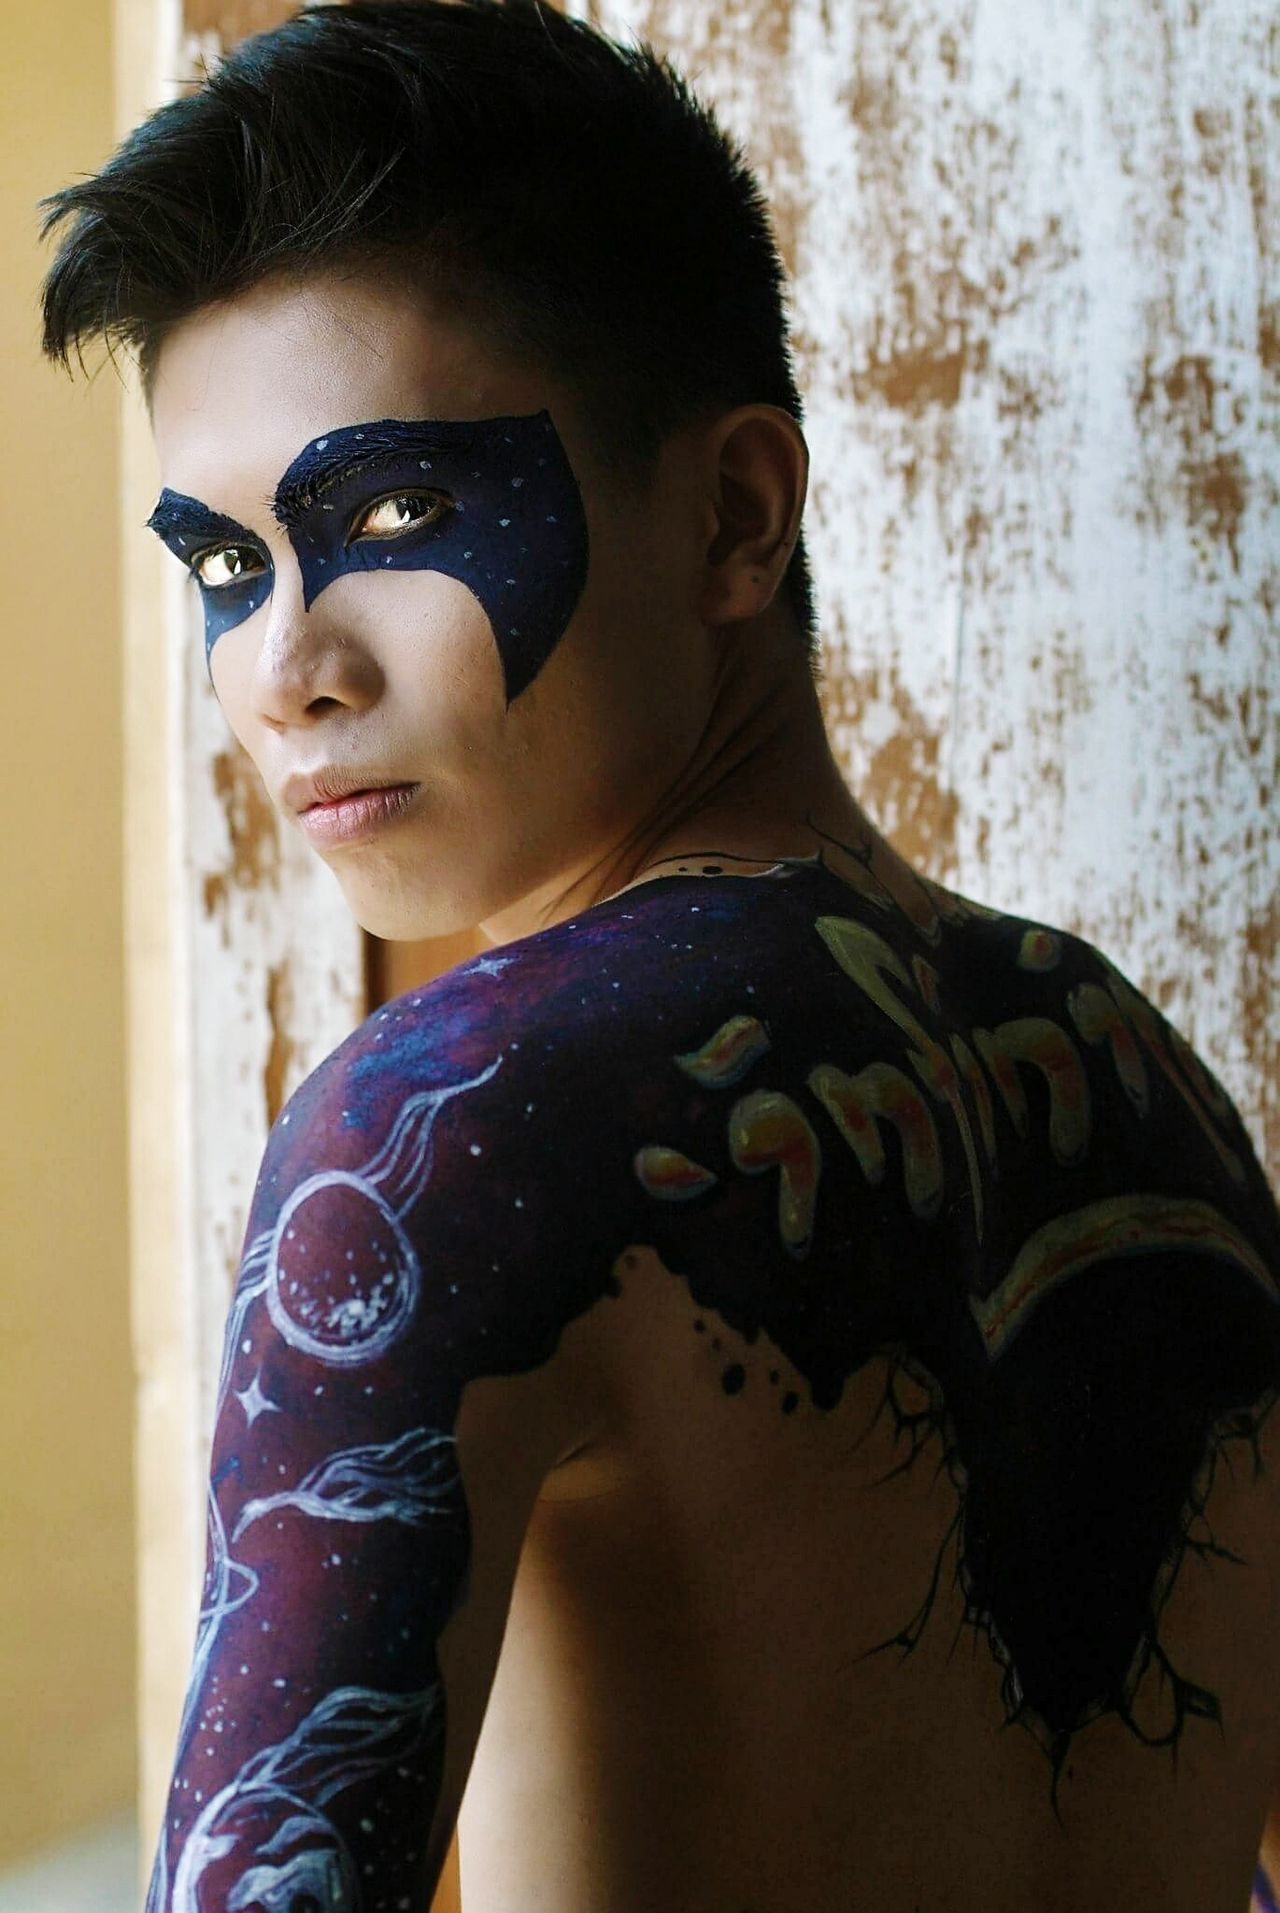 -'. secondPortraitCosmicSkies One Person Close-up Men Young Adult Photography Fashionable Fashion Photography Bodypaint Photoshoot Indoors  One Man Only Fashion Facepaint Facepainting Galaxy